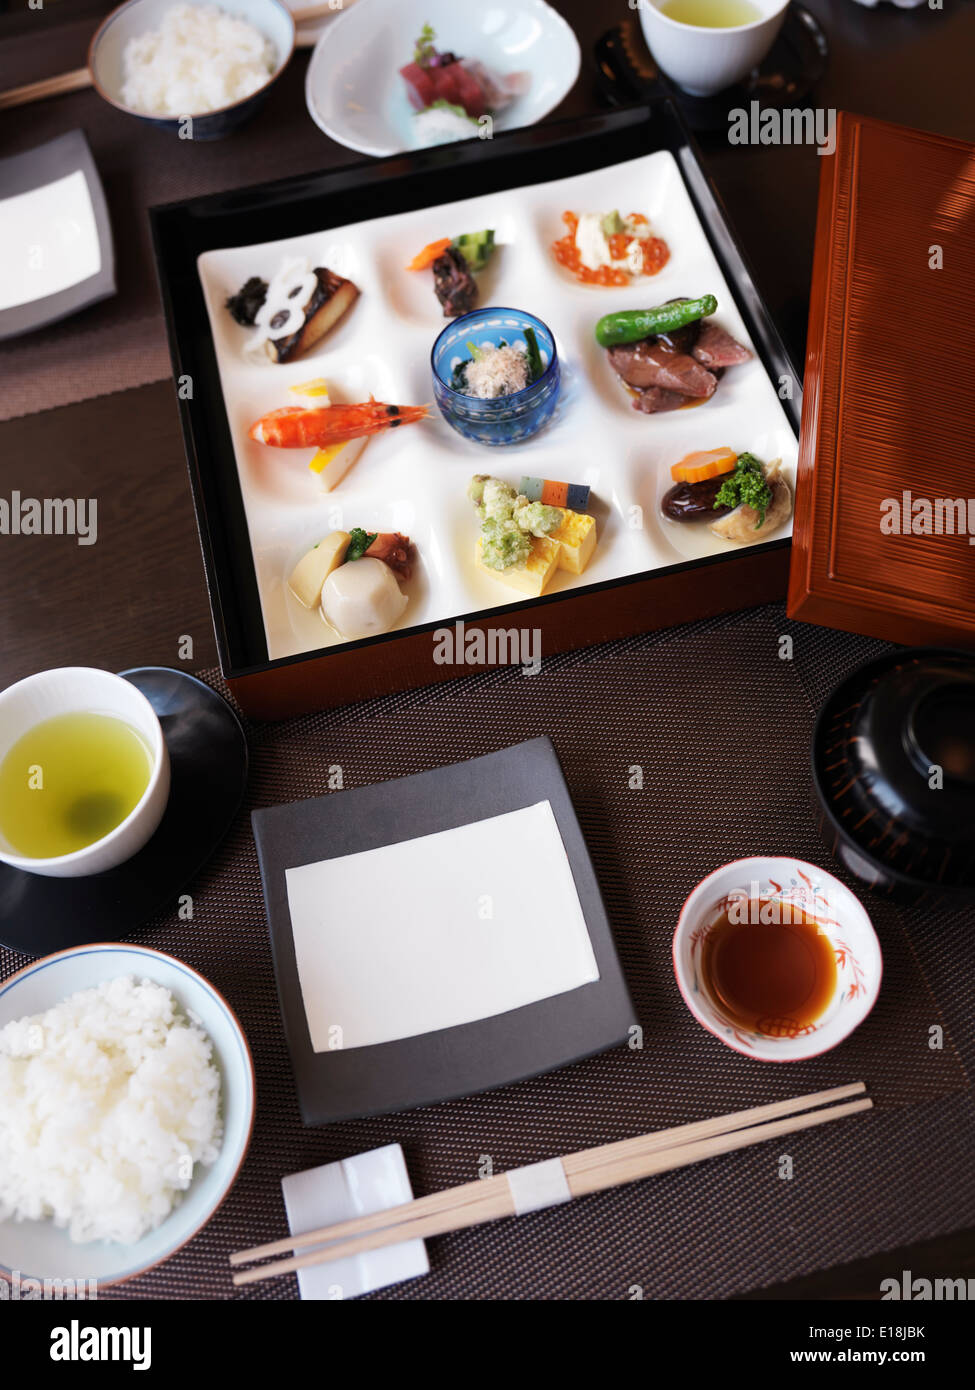 Meal served at a Japanese high-end sushi restaurant. Ginza, Tokyo, Japan. - Stock Image